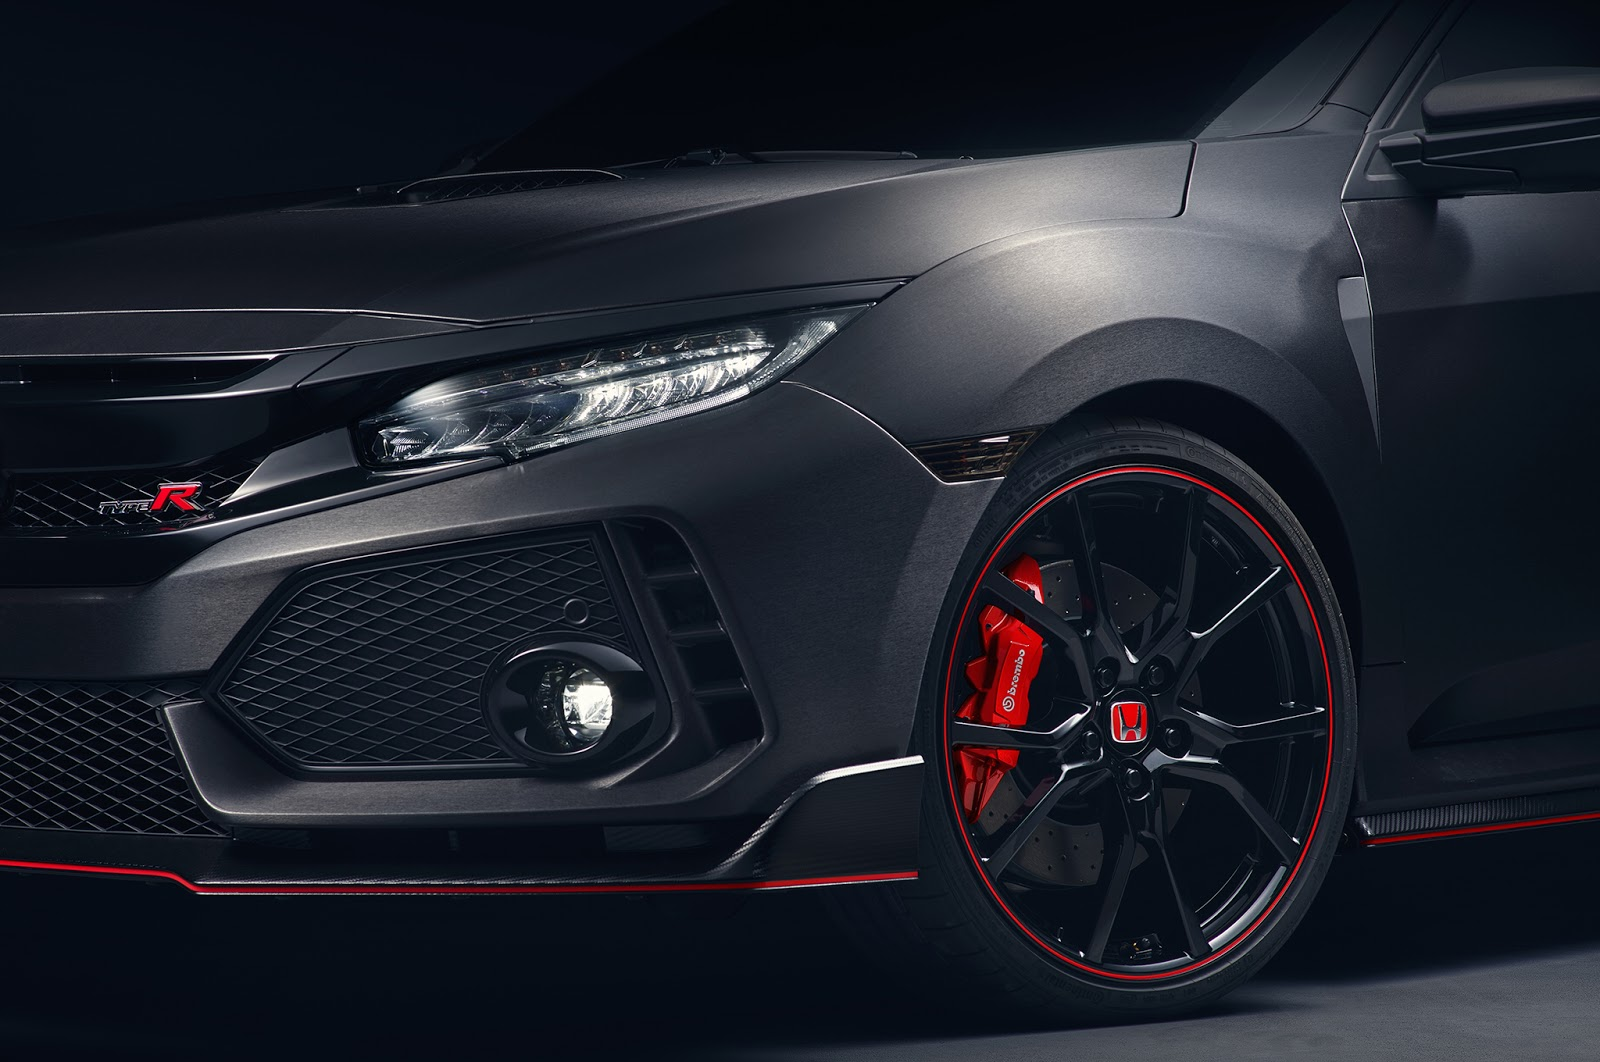 2018-Honda-Civic-Type-R-8.jpg